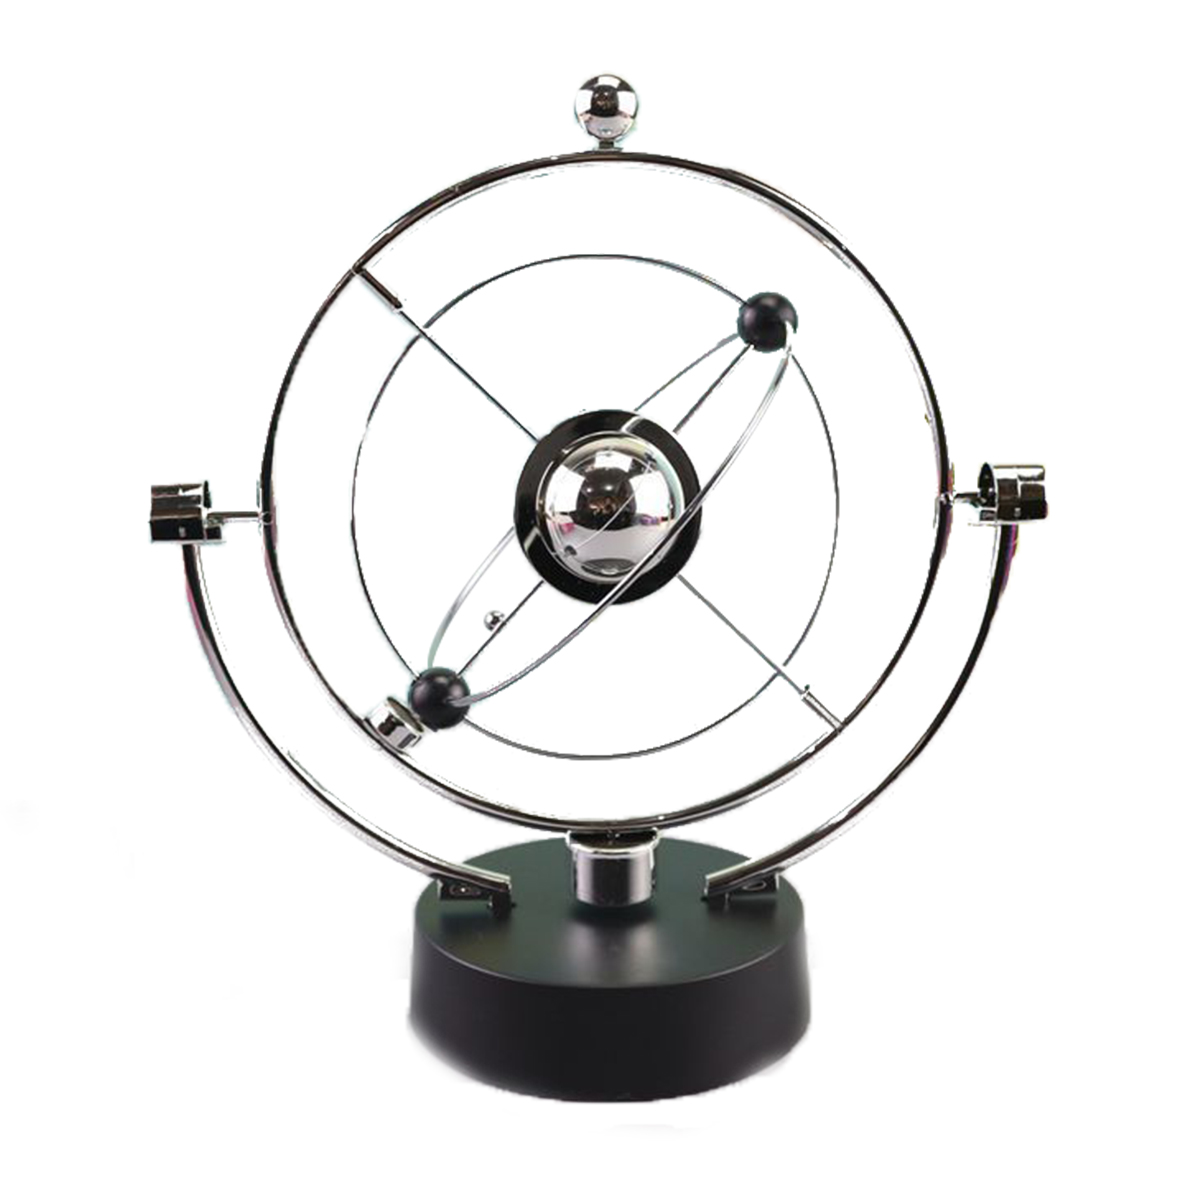 Rotation Perpetual Motion Swing Celestial Globe Newton Pendulum Model Kinetic Orbital Revolving Gadget Home Decor Craft Ornament